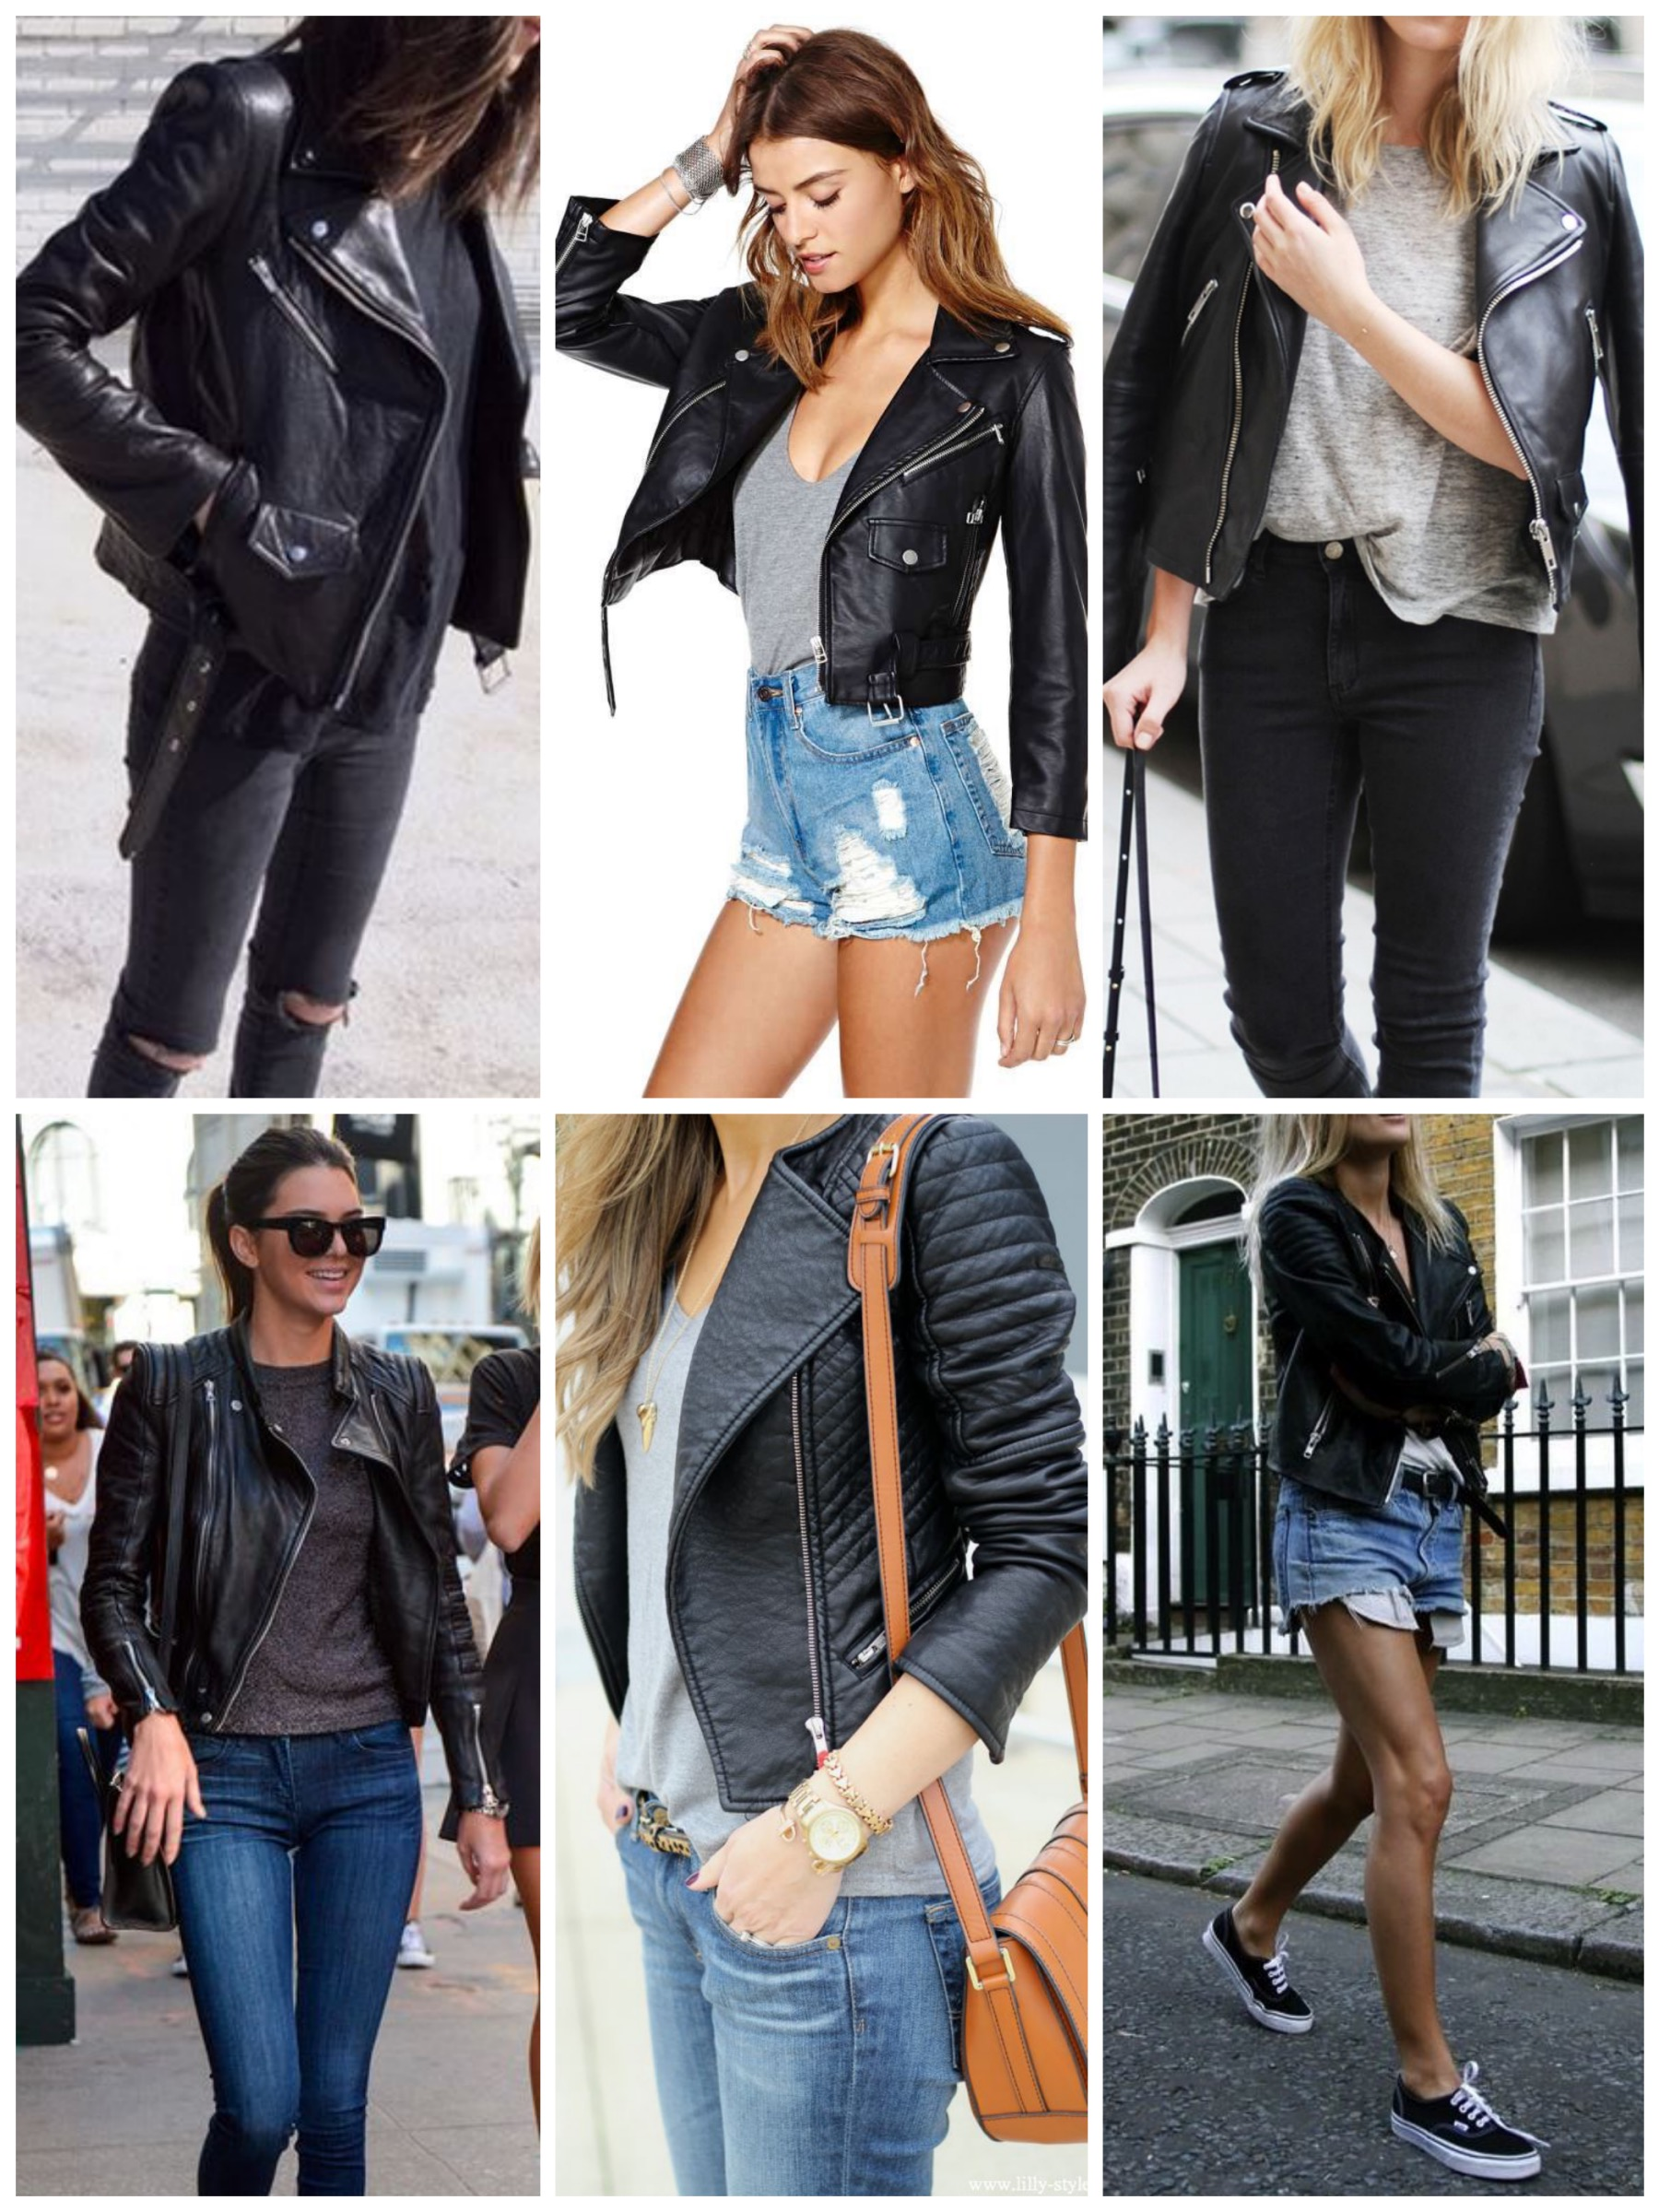 Pair your moto jacket with jeans for a casual look